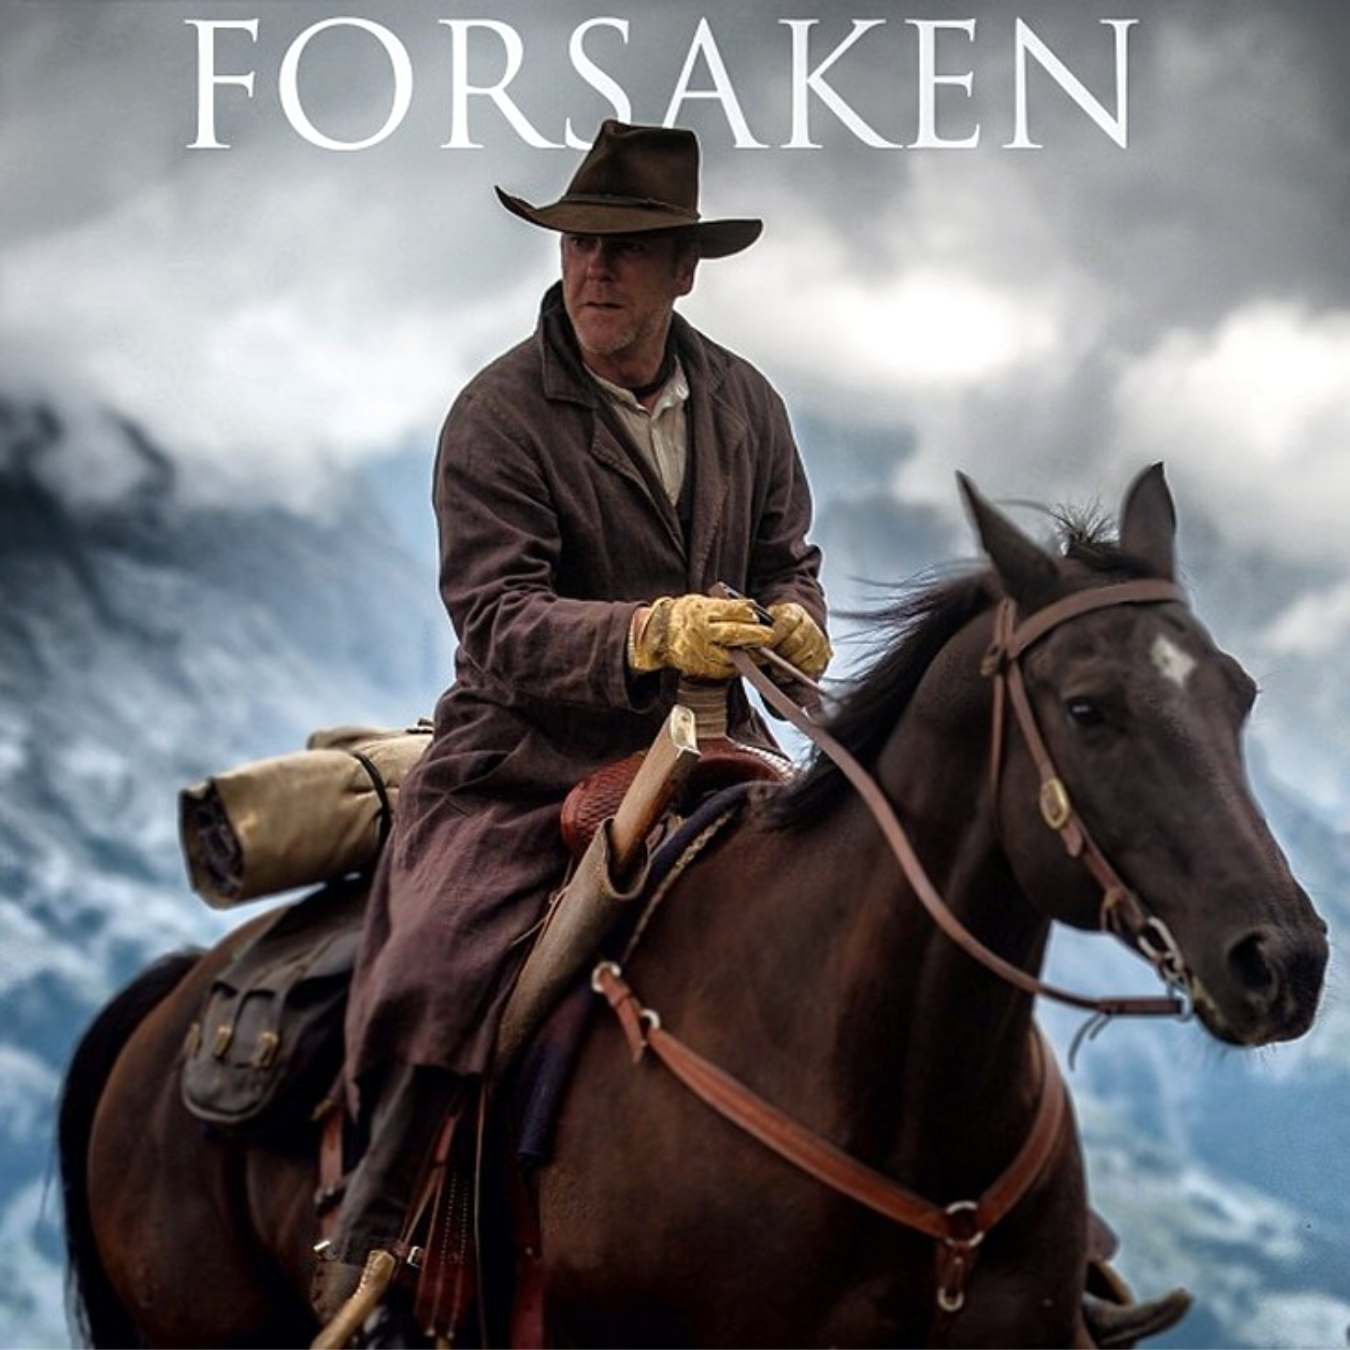 Donald and kiefer sutherland appearing in western forsaken